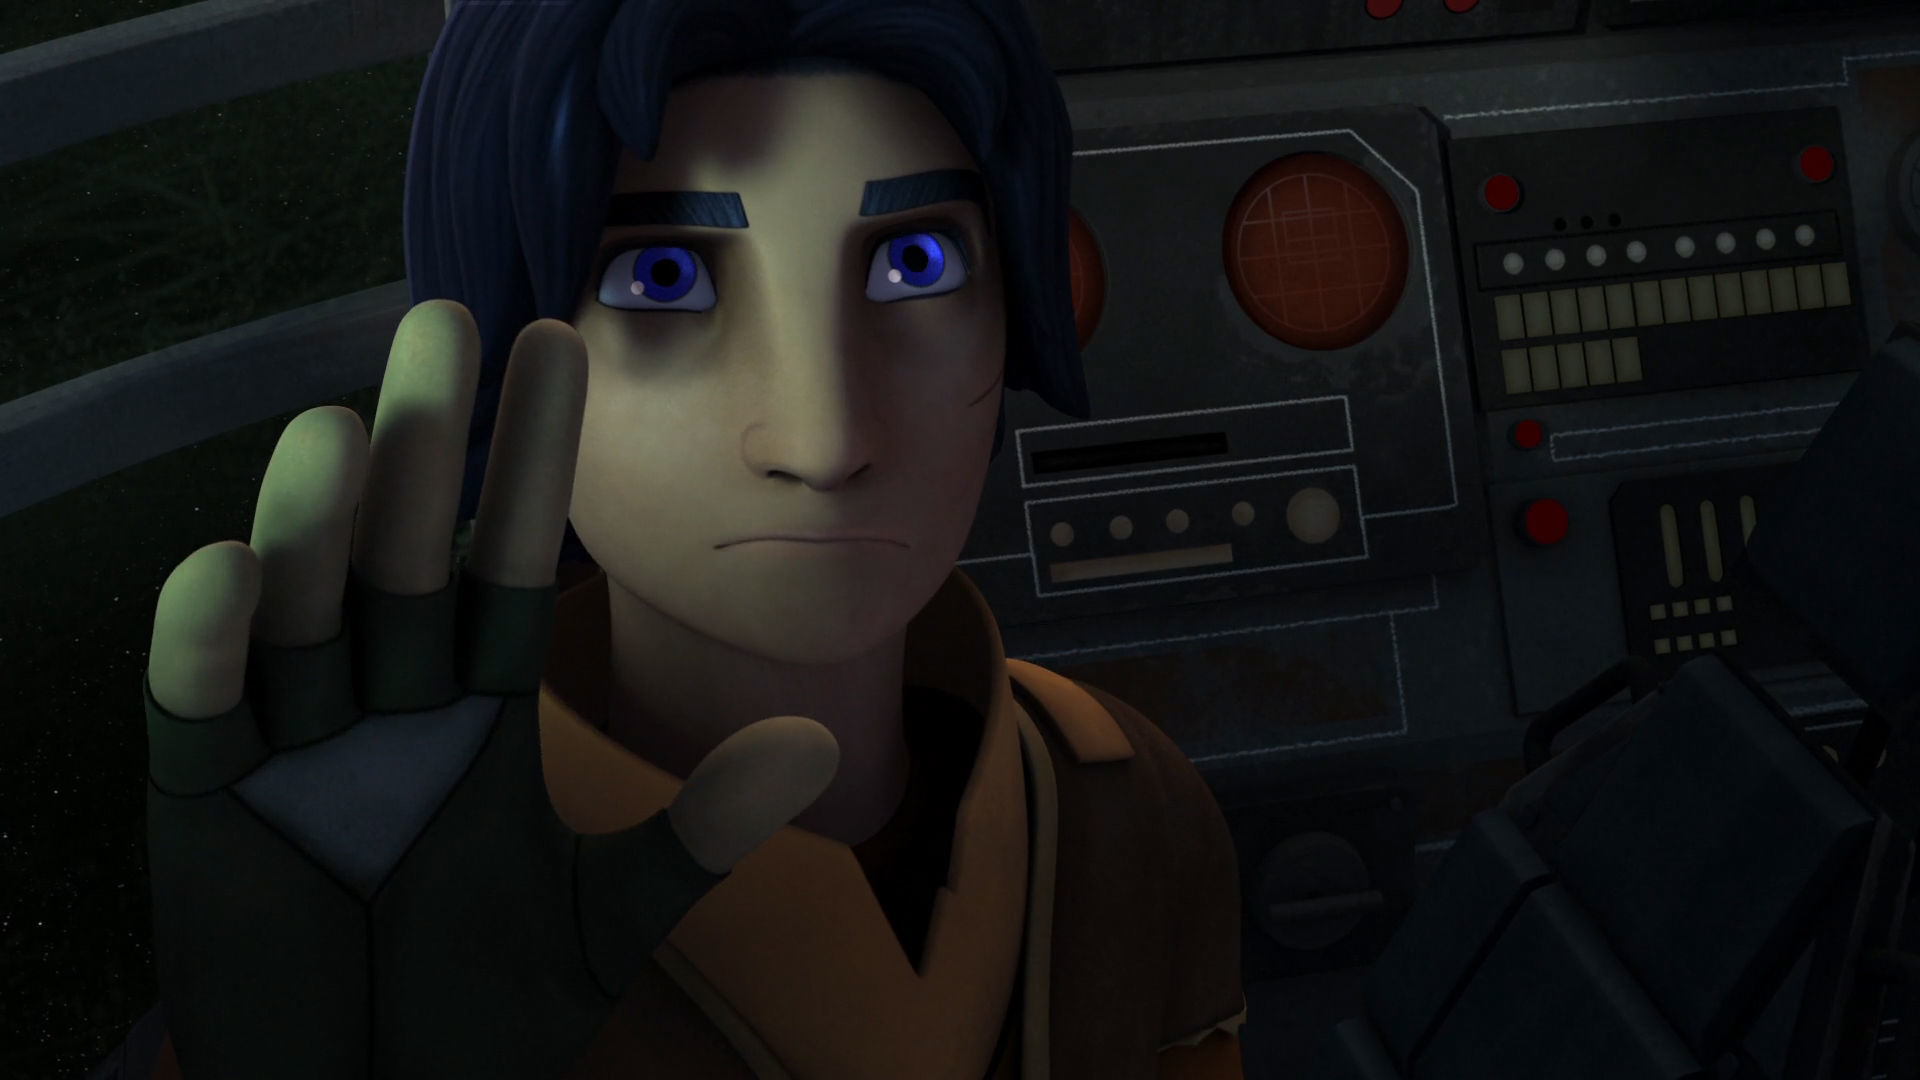 Star Wars Rebels - The Call